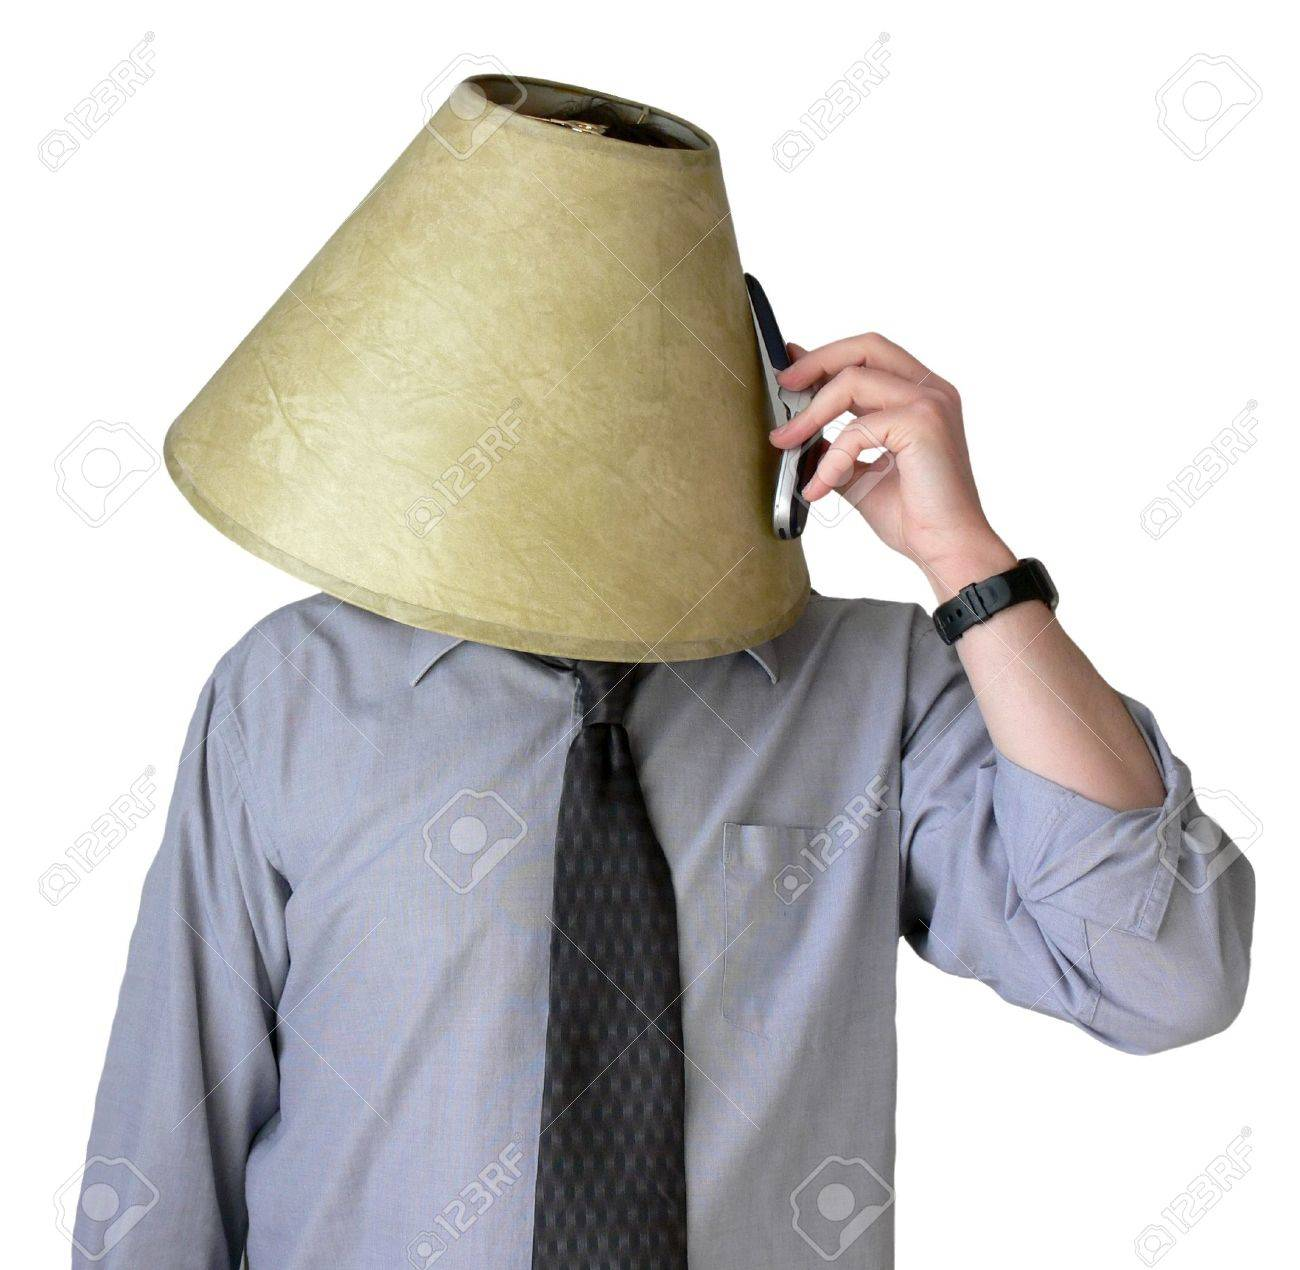 Businessman with a lampshade on his head, trying to talk on his cell phone. Stock Photo - 417672